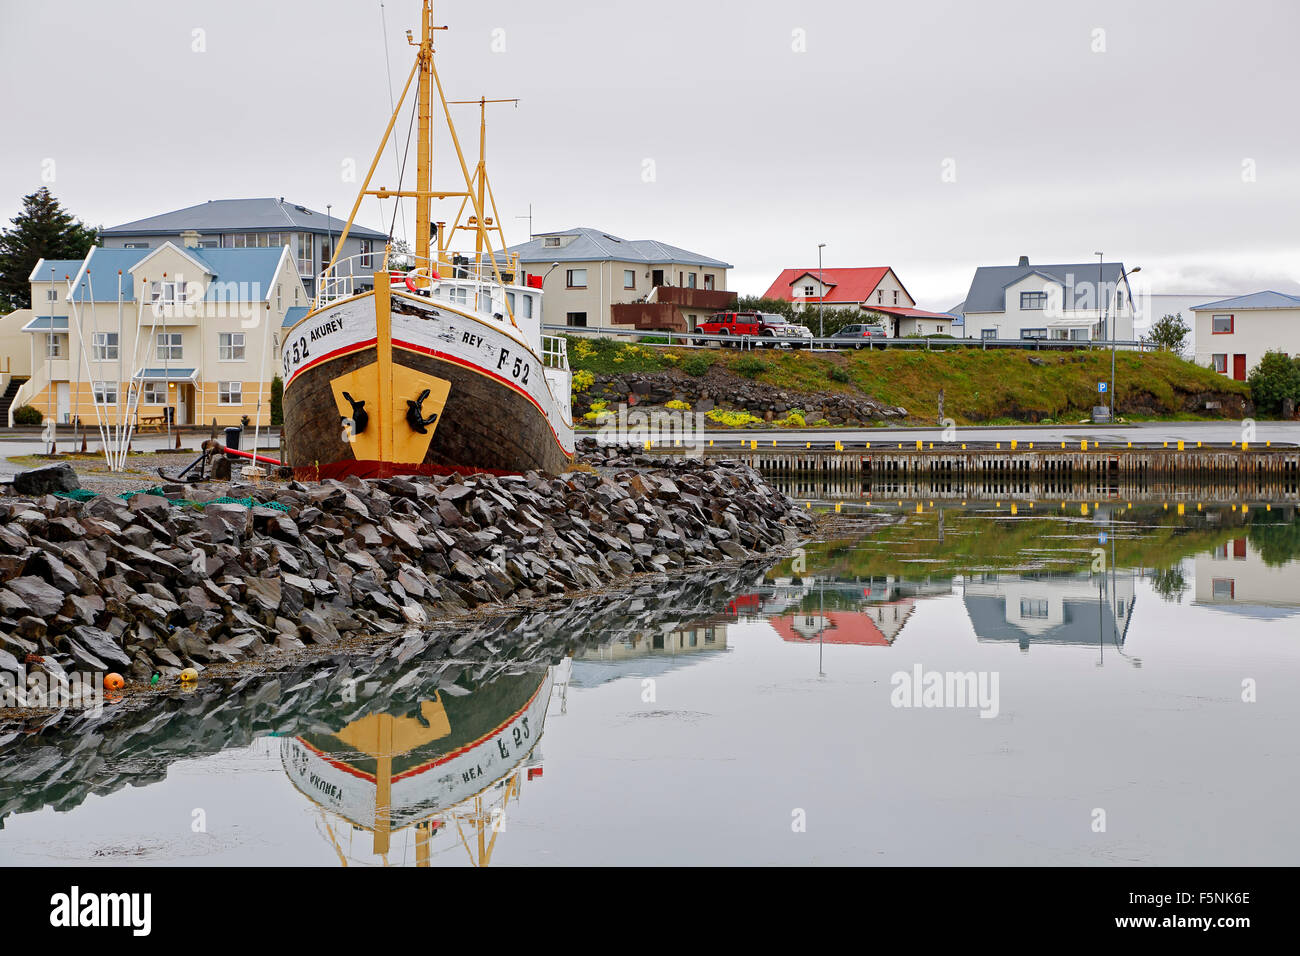 Boat and colorful houses, harbor, Hofn, Iceland Stock Photo